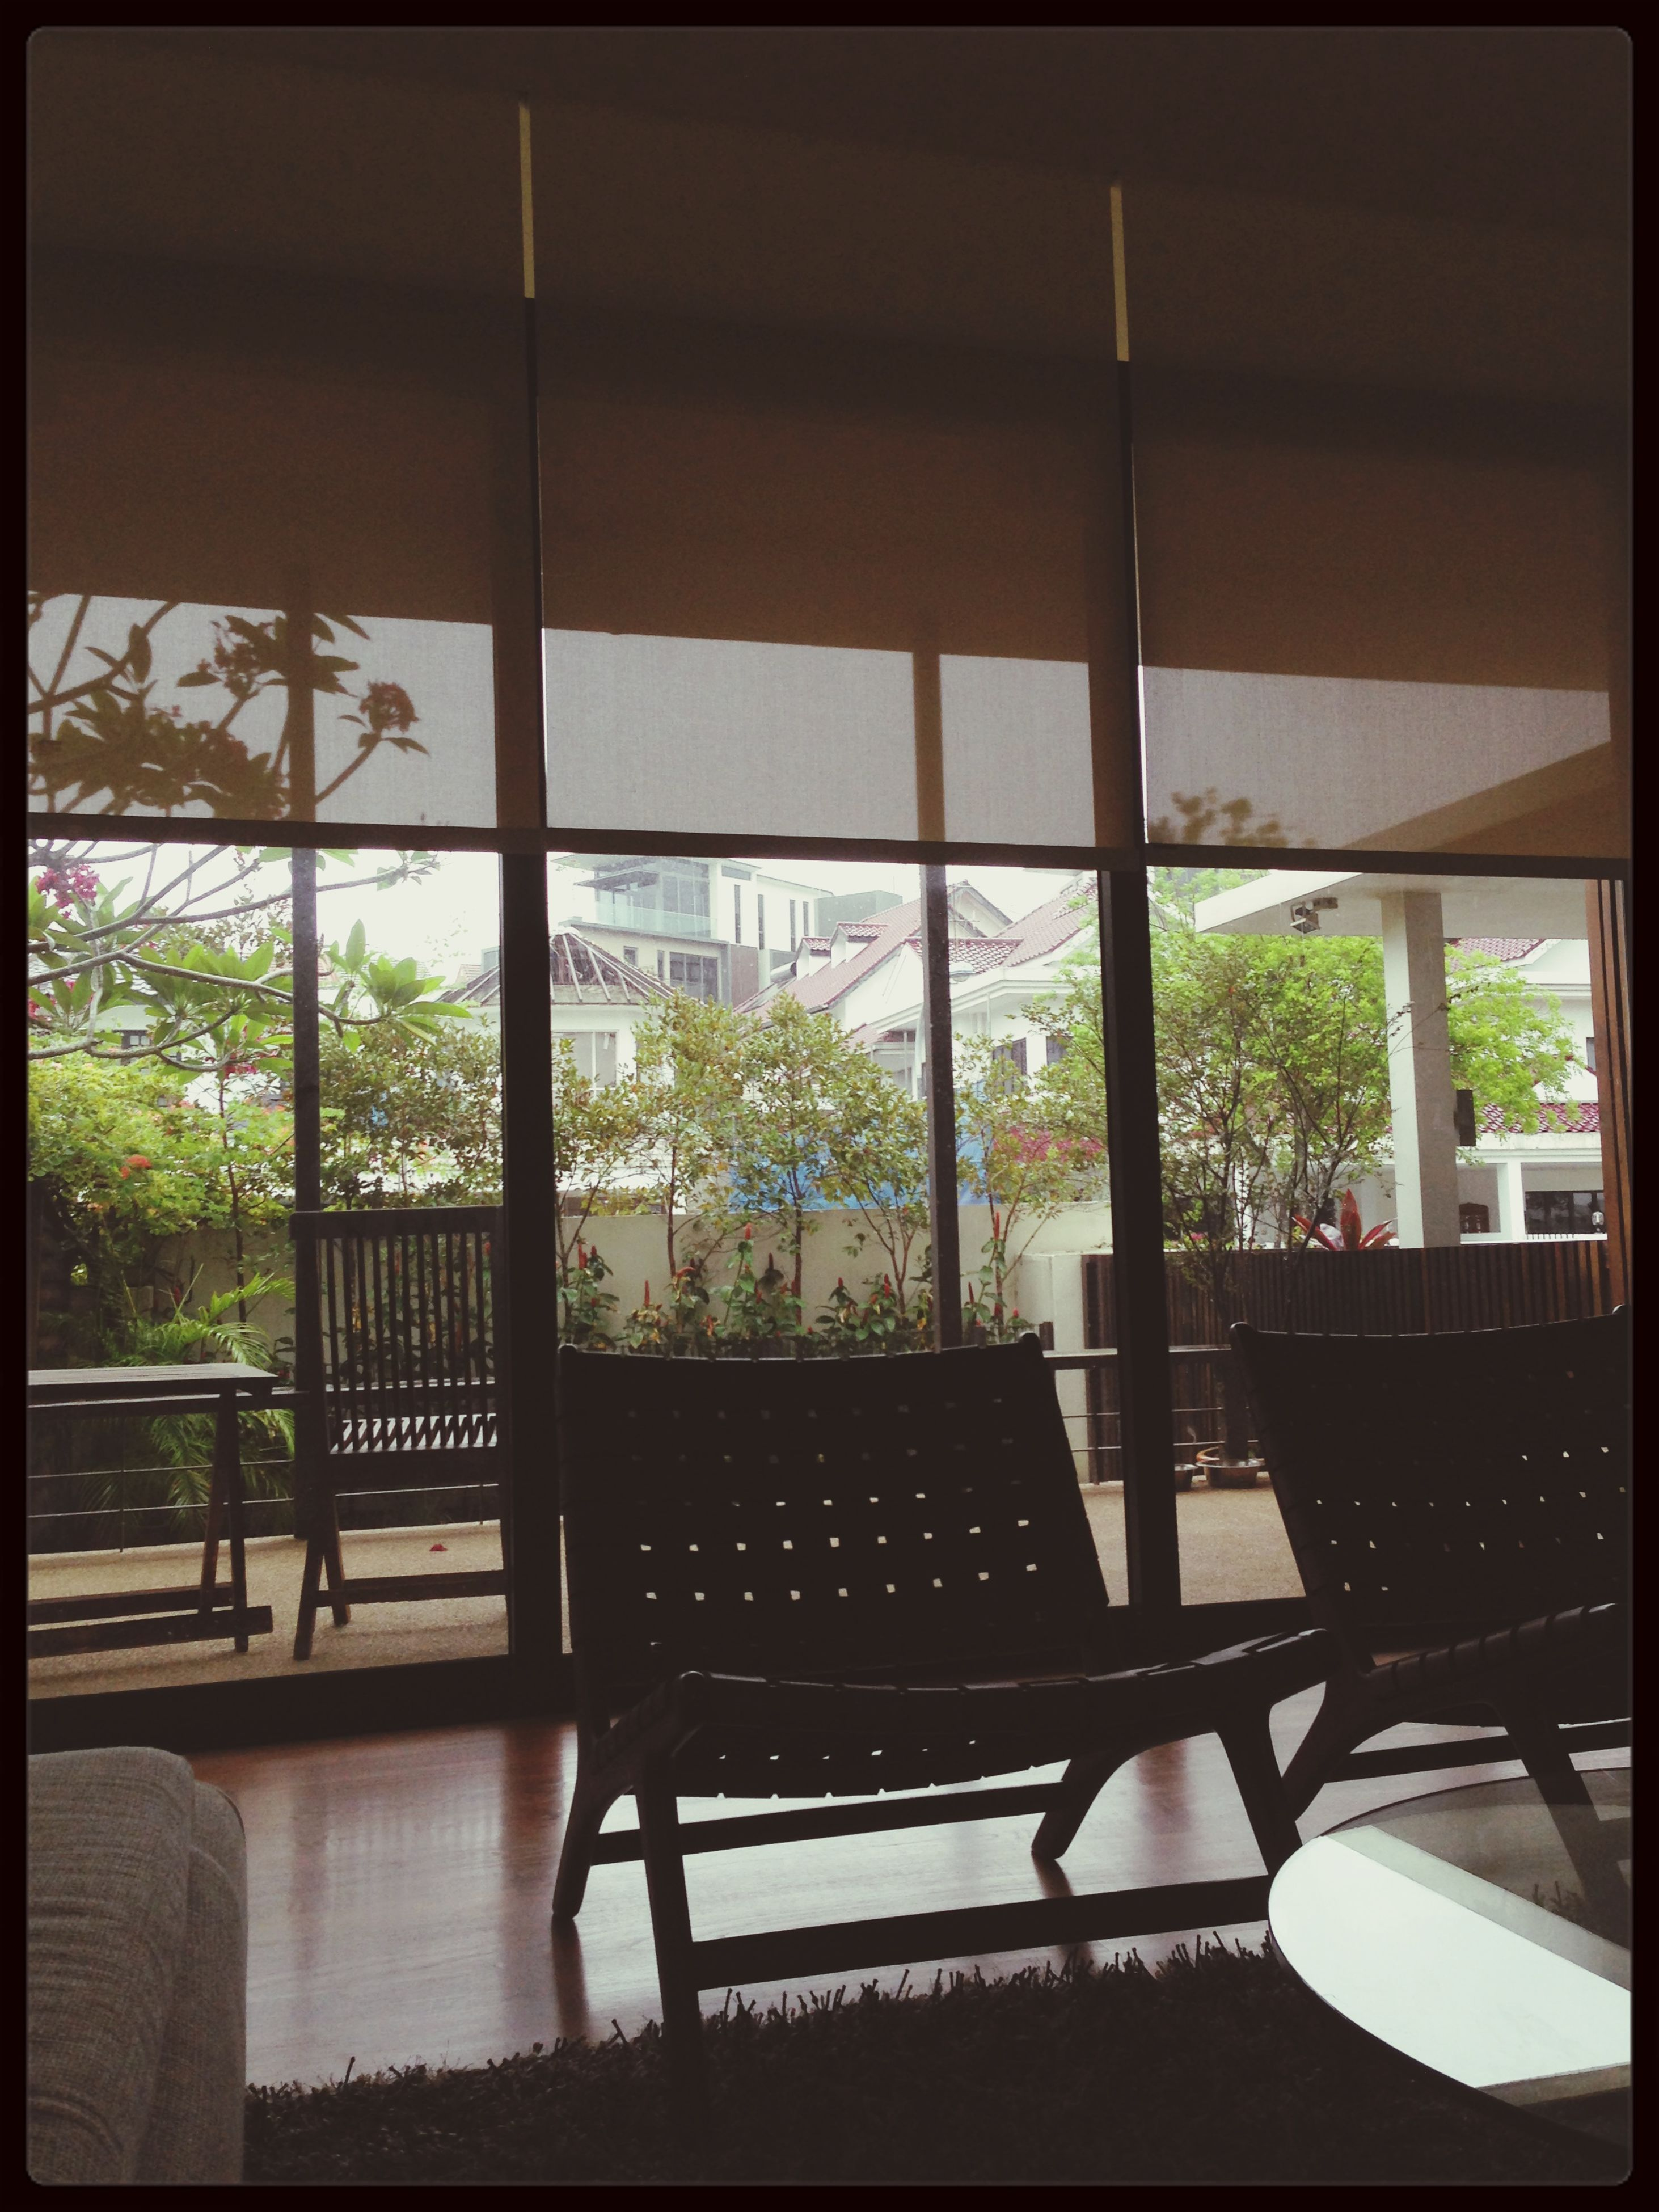 indoors, table, chair, window, potted plant, glass - material, home interior, architecture, built structure, restaurant, transfer print, absence, sunlight, vase, transparent, house, empty, auto post production filter, day, tree